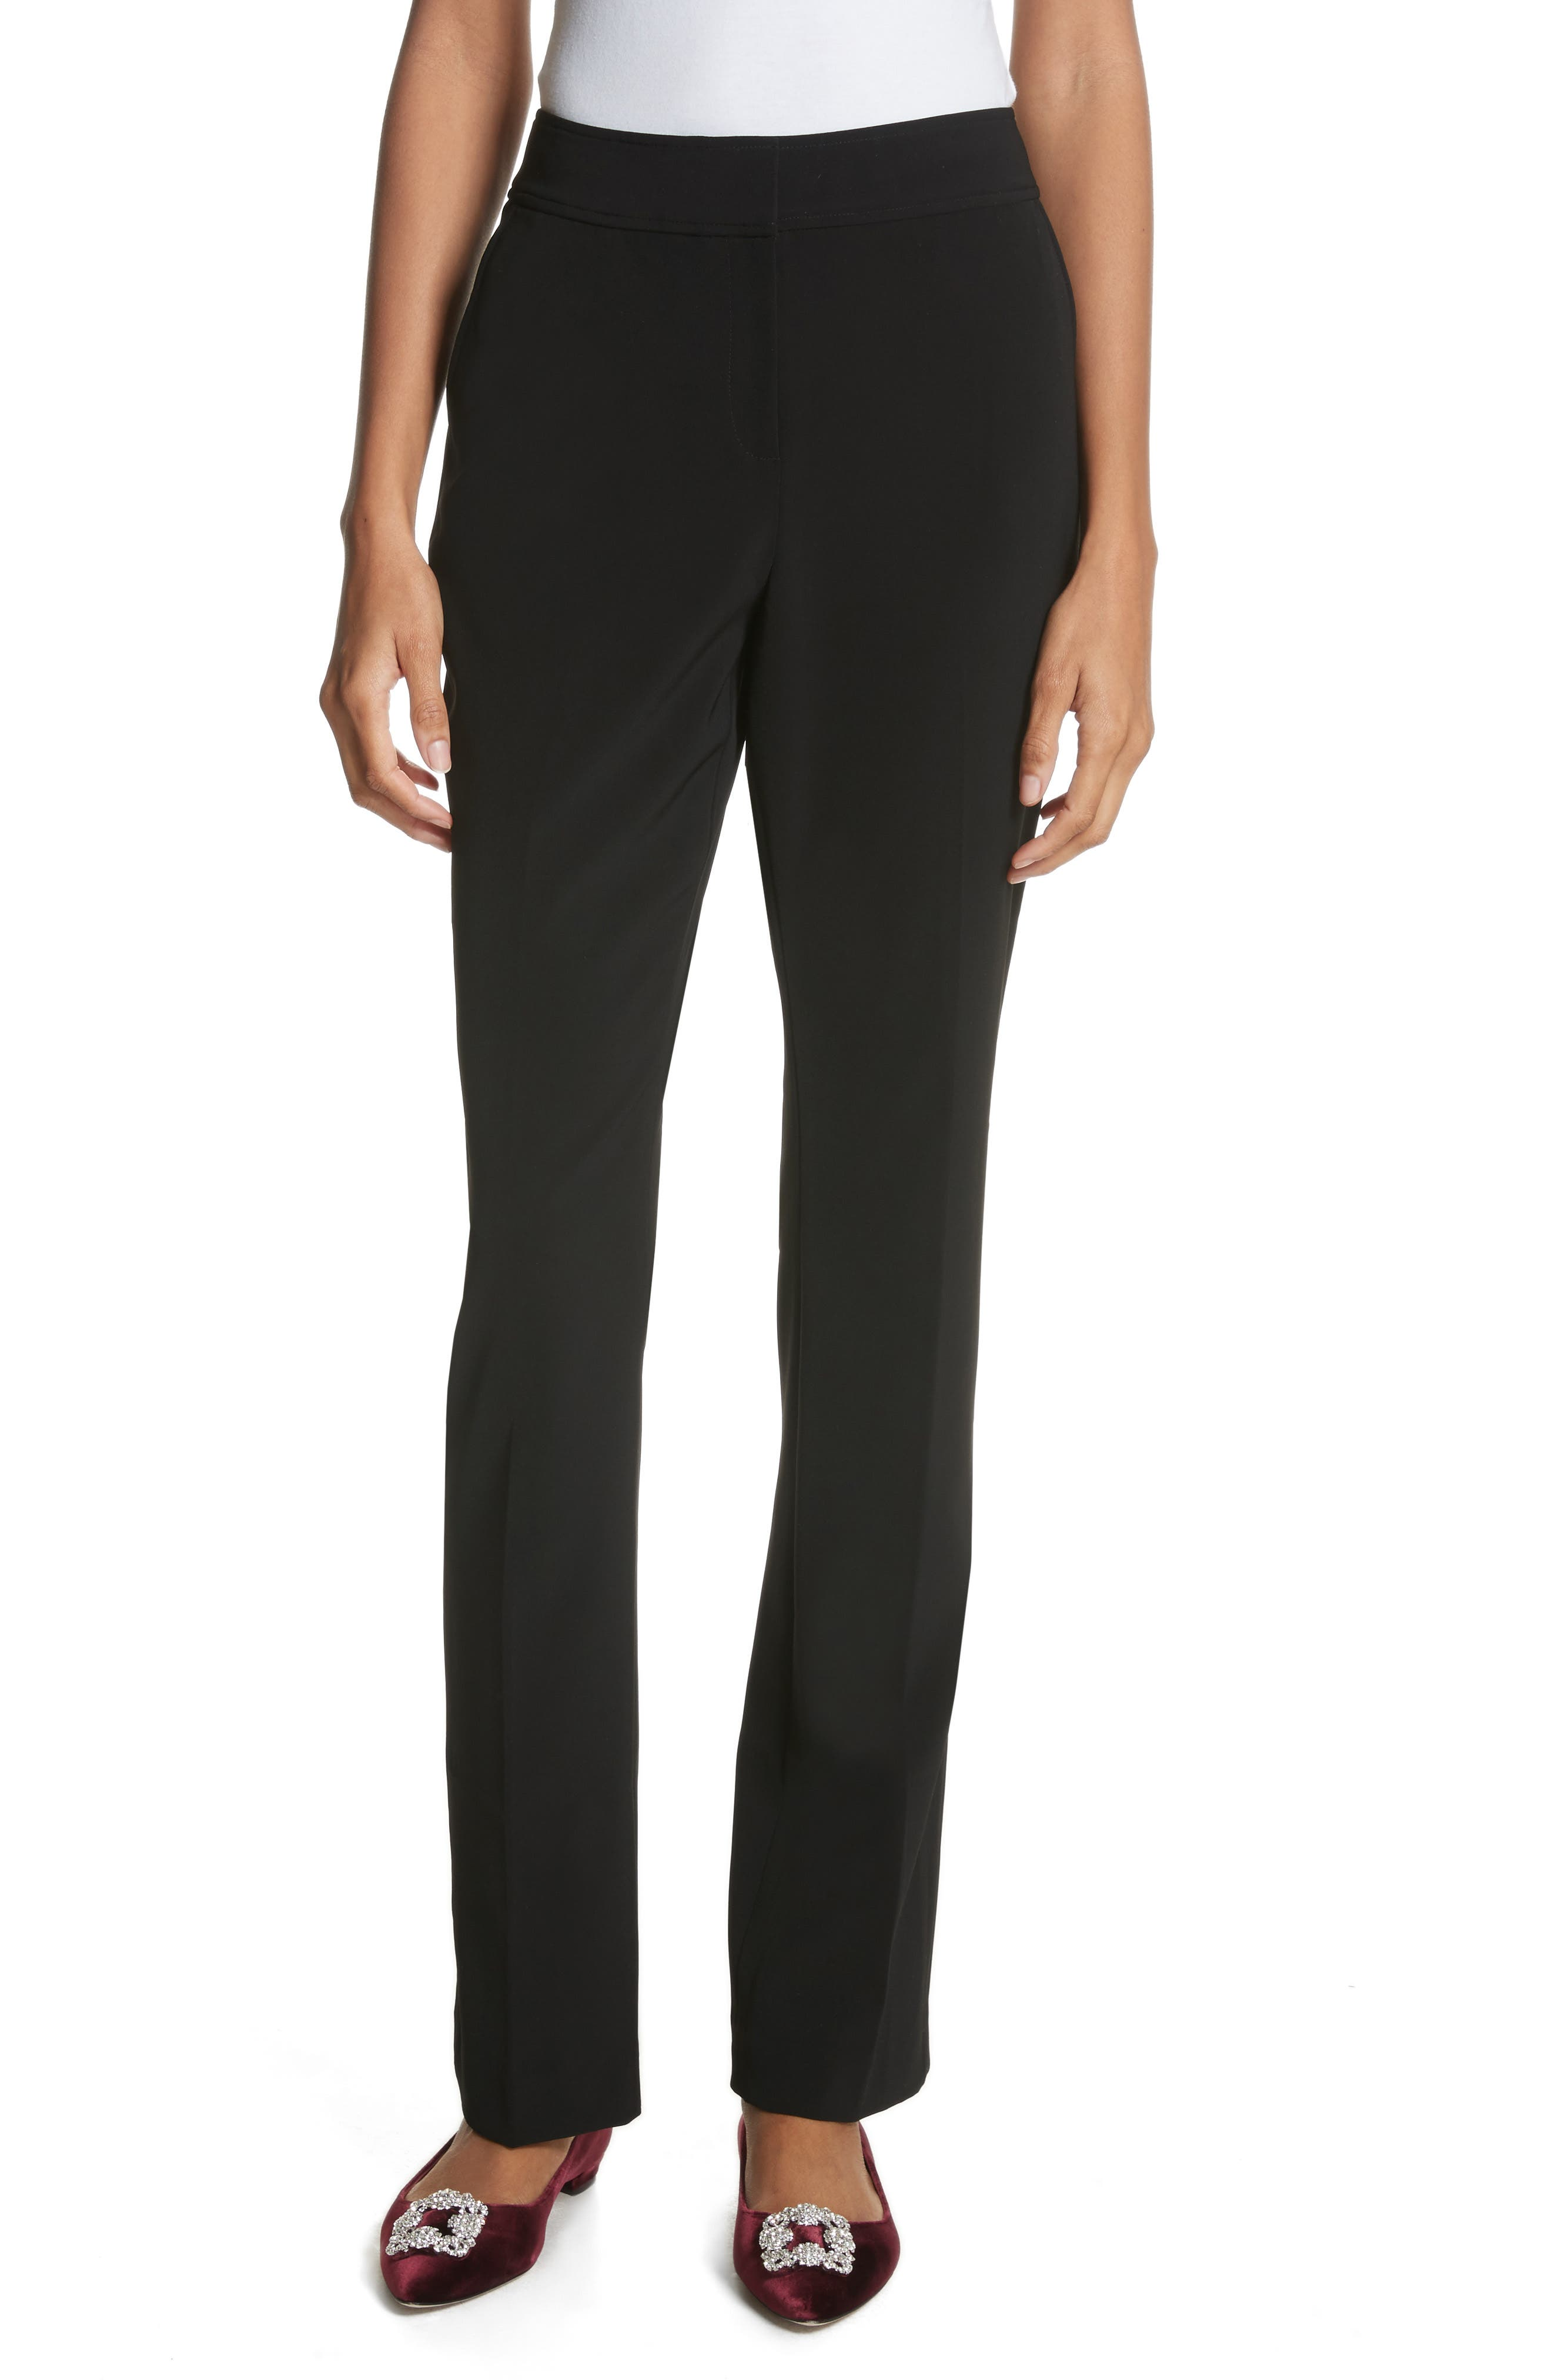 Yulit High Waist Trousers,                         Main,                         color, 001